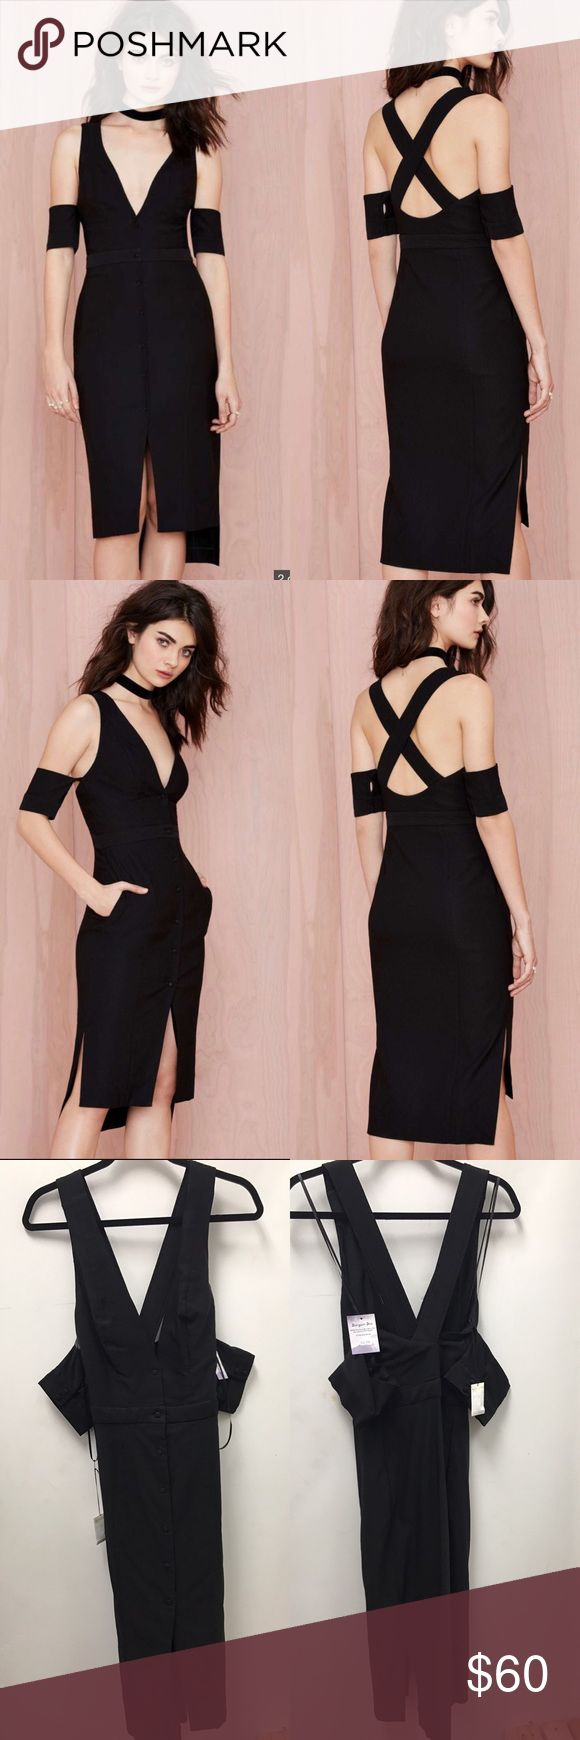 Nasty Gal Wild Forces Cold Shoulder Dress Wild forces couldn't keep us away from this dress. The Wild Forces Dress is made in a ribbed black fabric and features front button closure, arm band detail, v-neck, and crossing straps at back. Unlined, midi length. Looks killer teamed up with platforms and a coatigan, or chunky heels and a clutch. By Nasty Gal. Going OutCut Out, Off The Shoulder Nasty Gal Dresses Midi